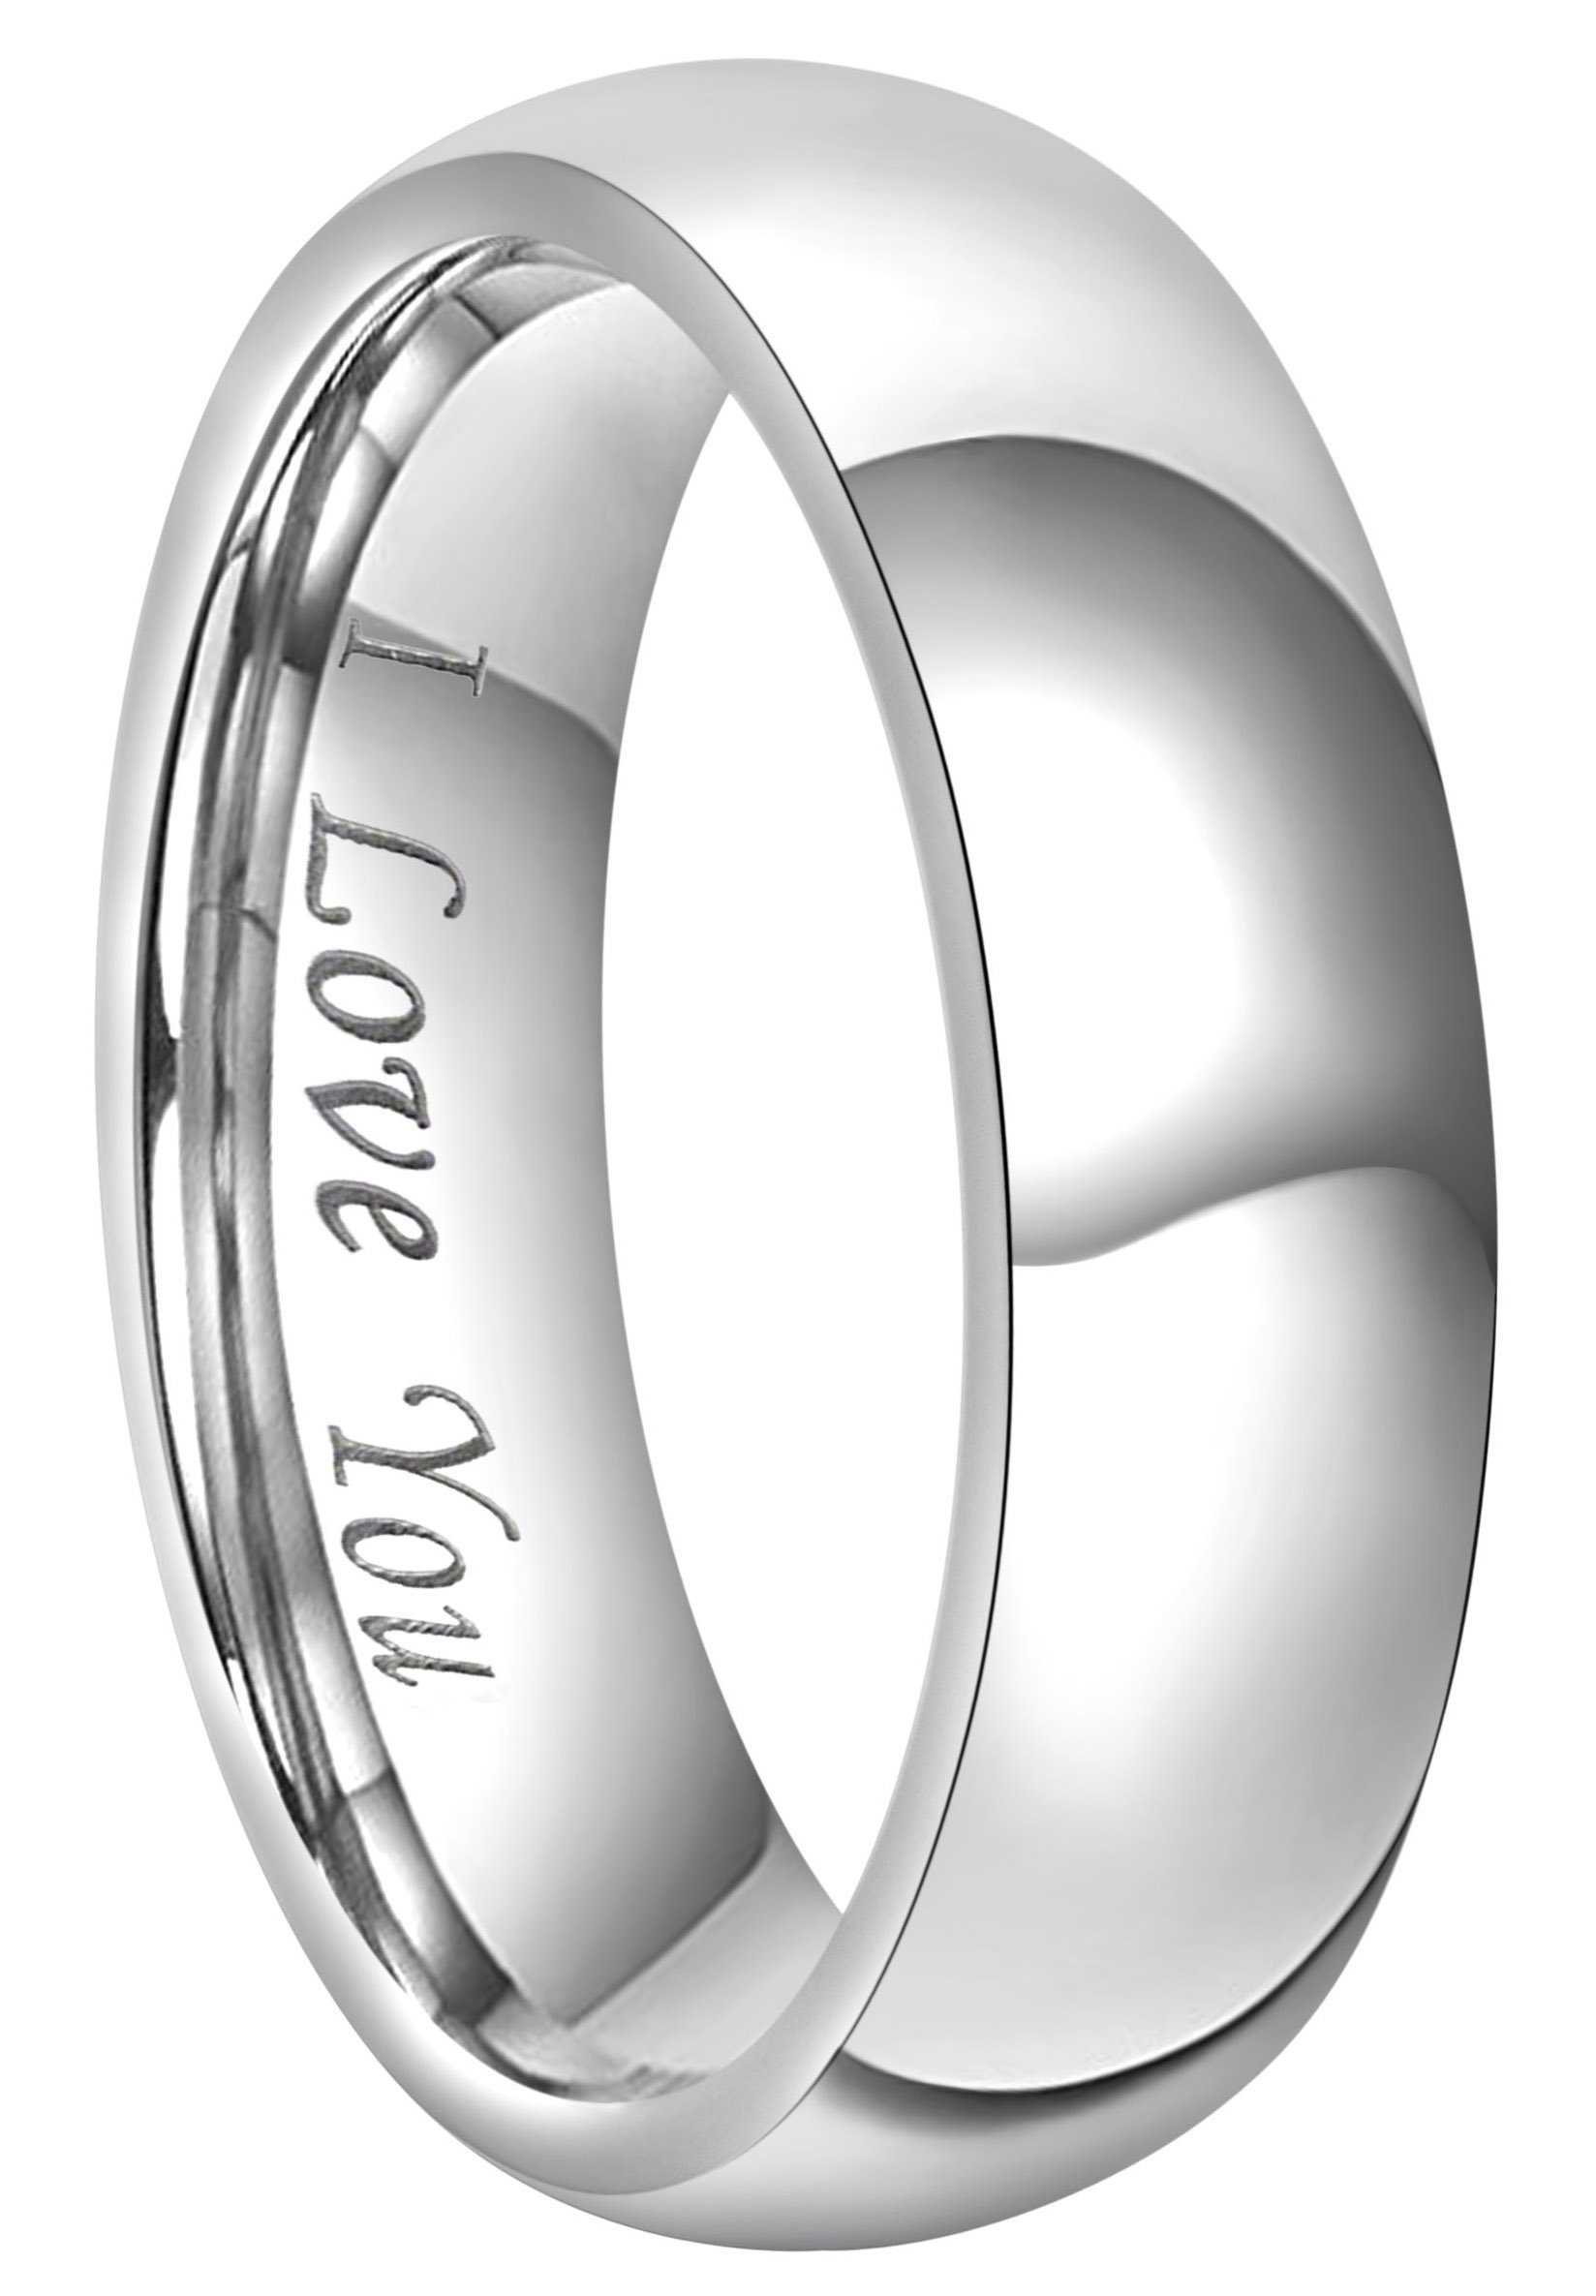 CROWNAL 4mm 6mm 8mm Titanium Couple Wedding Bands Rings Men Women Dome Polished Engraved I Love You Comfort Fit Size 4 To 16 (6mm,8)